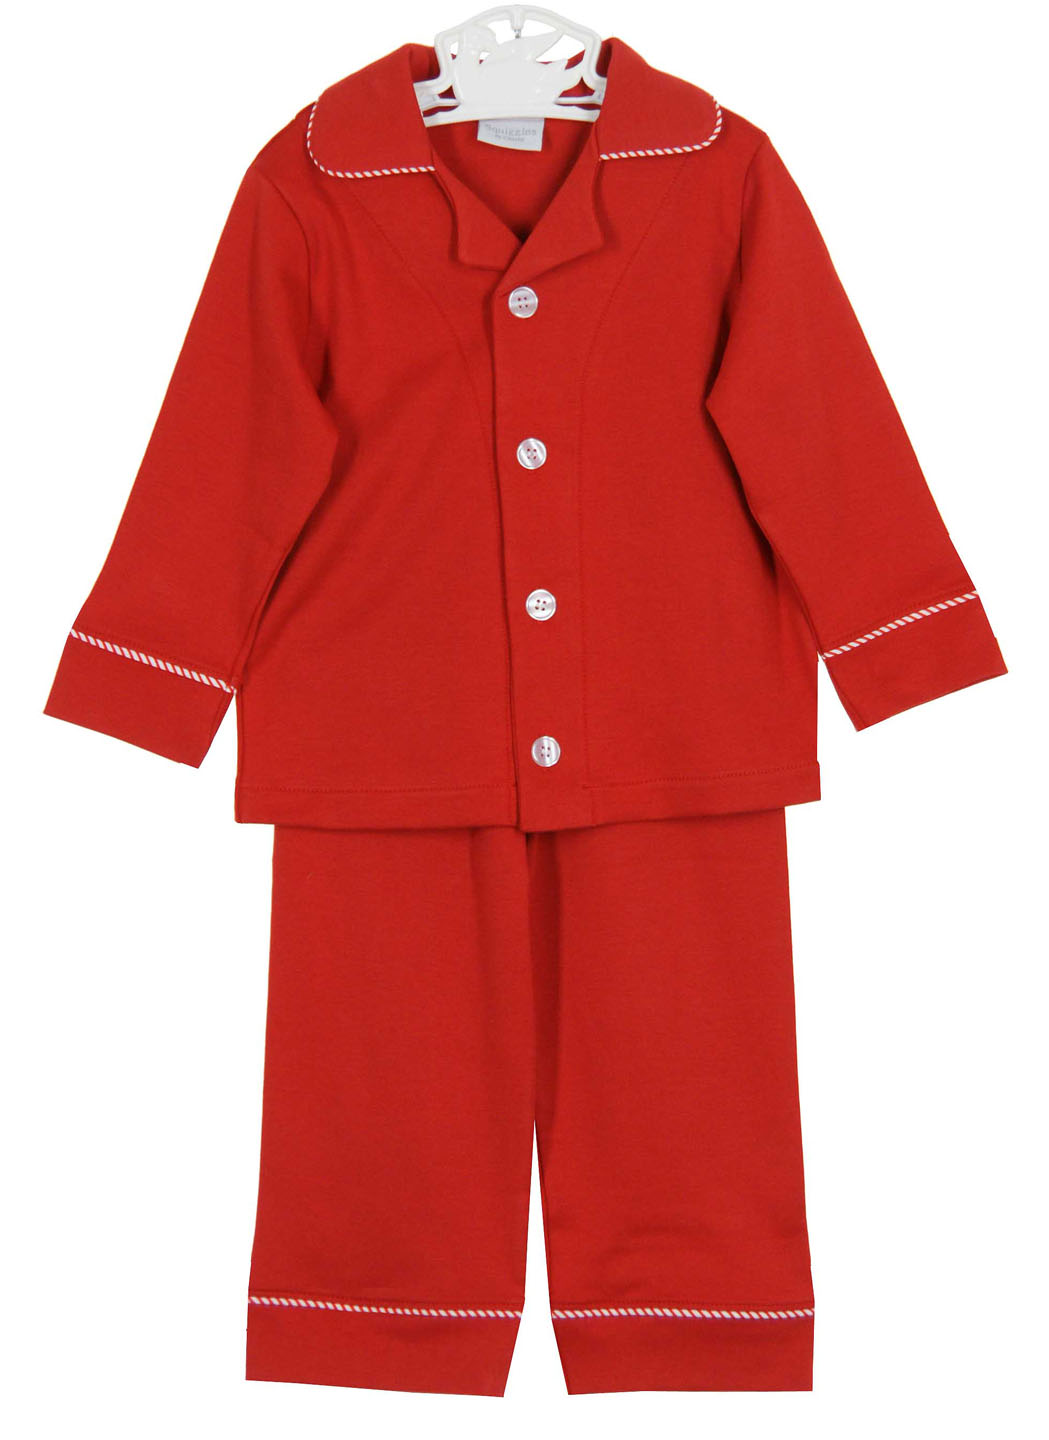 Squiggles Monogrammable Red Pima Cotton Knit Pajamas